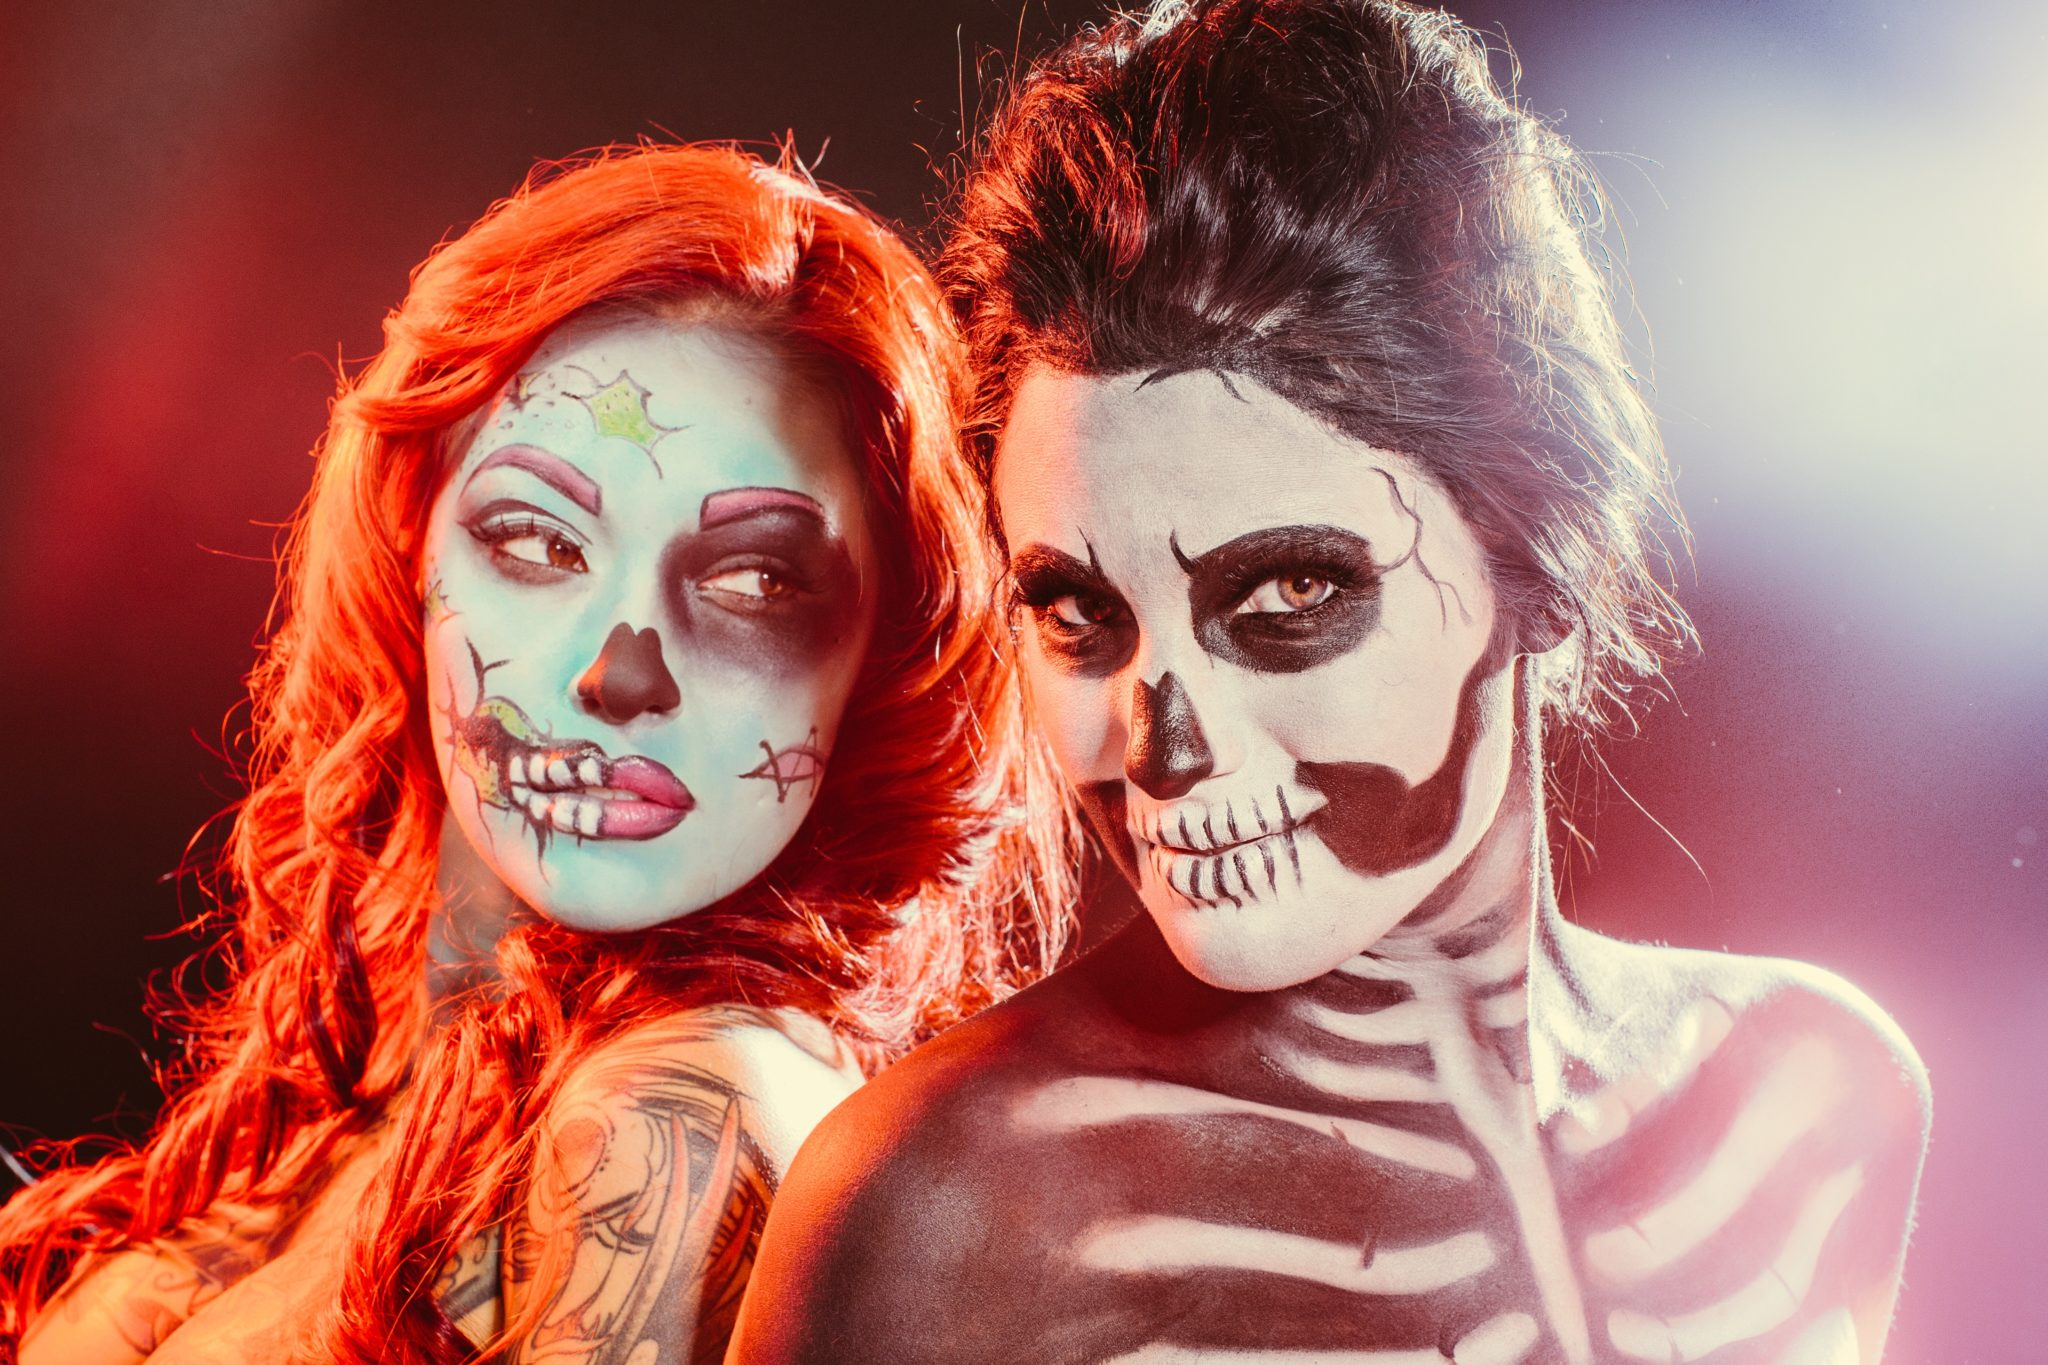 Skeleton and Comic Hallowen Makeup | halloween makeup ideas | halloween costume ideas | how to do makeup for halloween | halloween inspired makeup ideas | makeup tips for halloween || Dressed to Kill